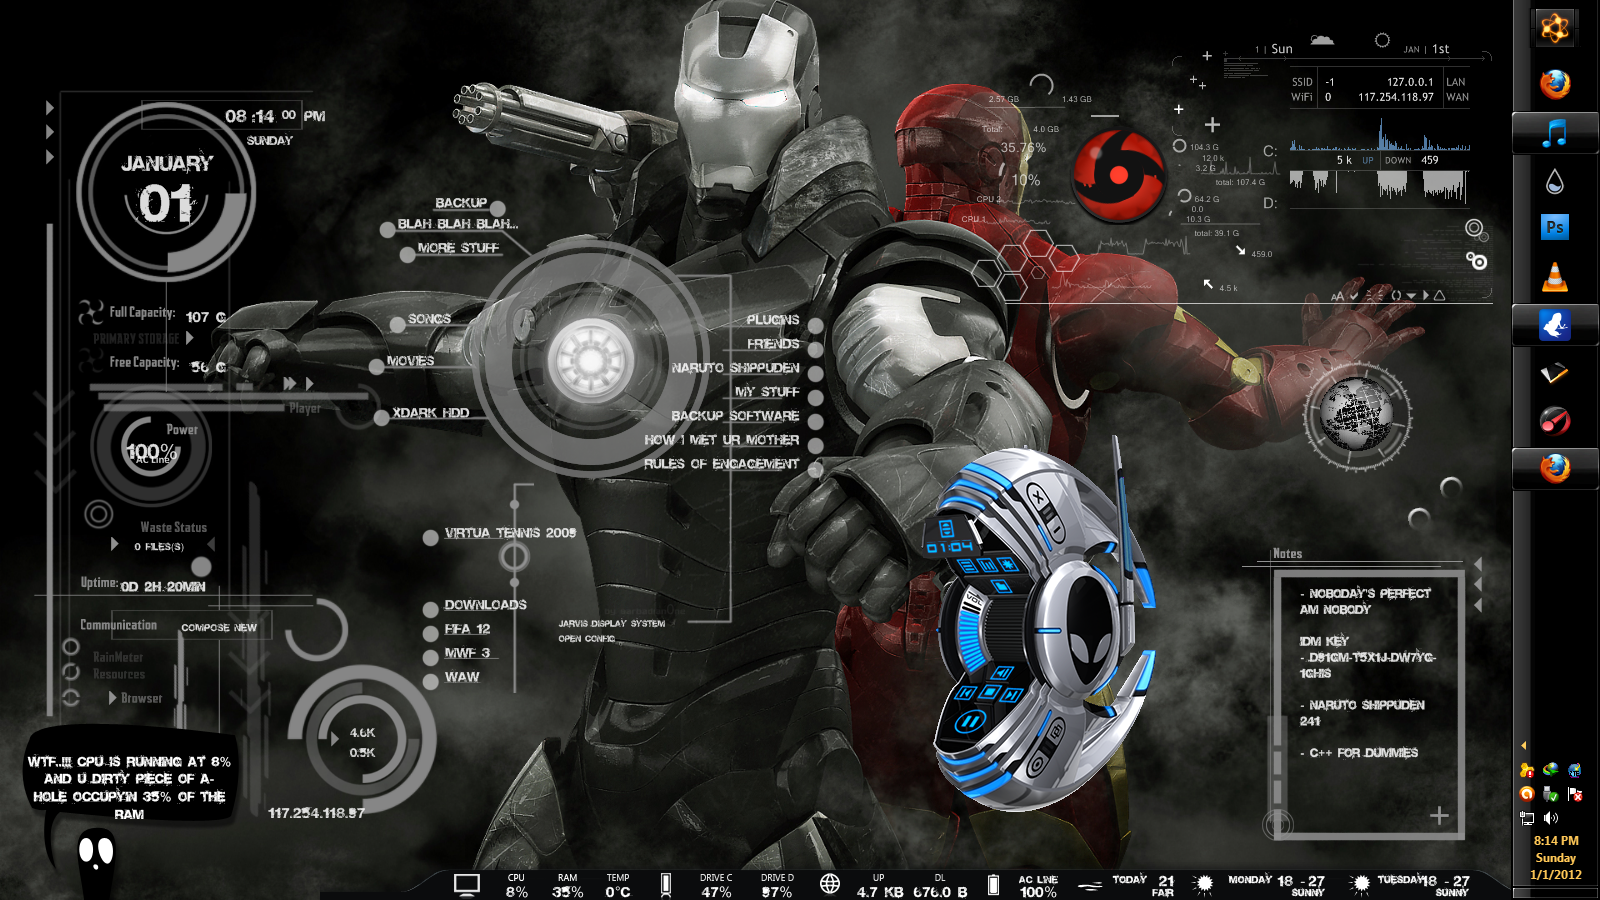 Top 5 inspiring windows 7 themes for hackers caresofts you can learn anything - Iron man jarvis background ...